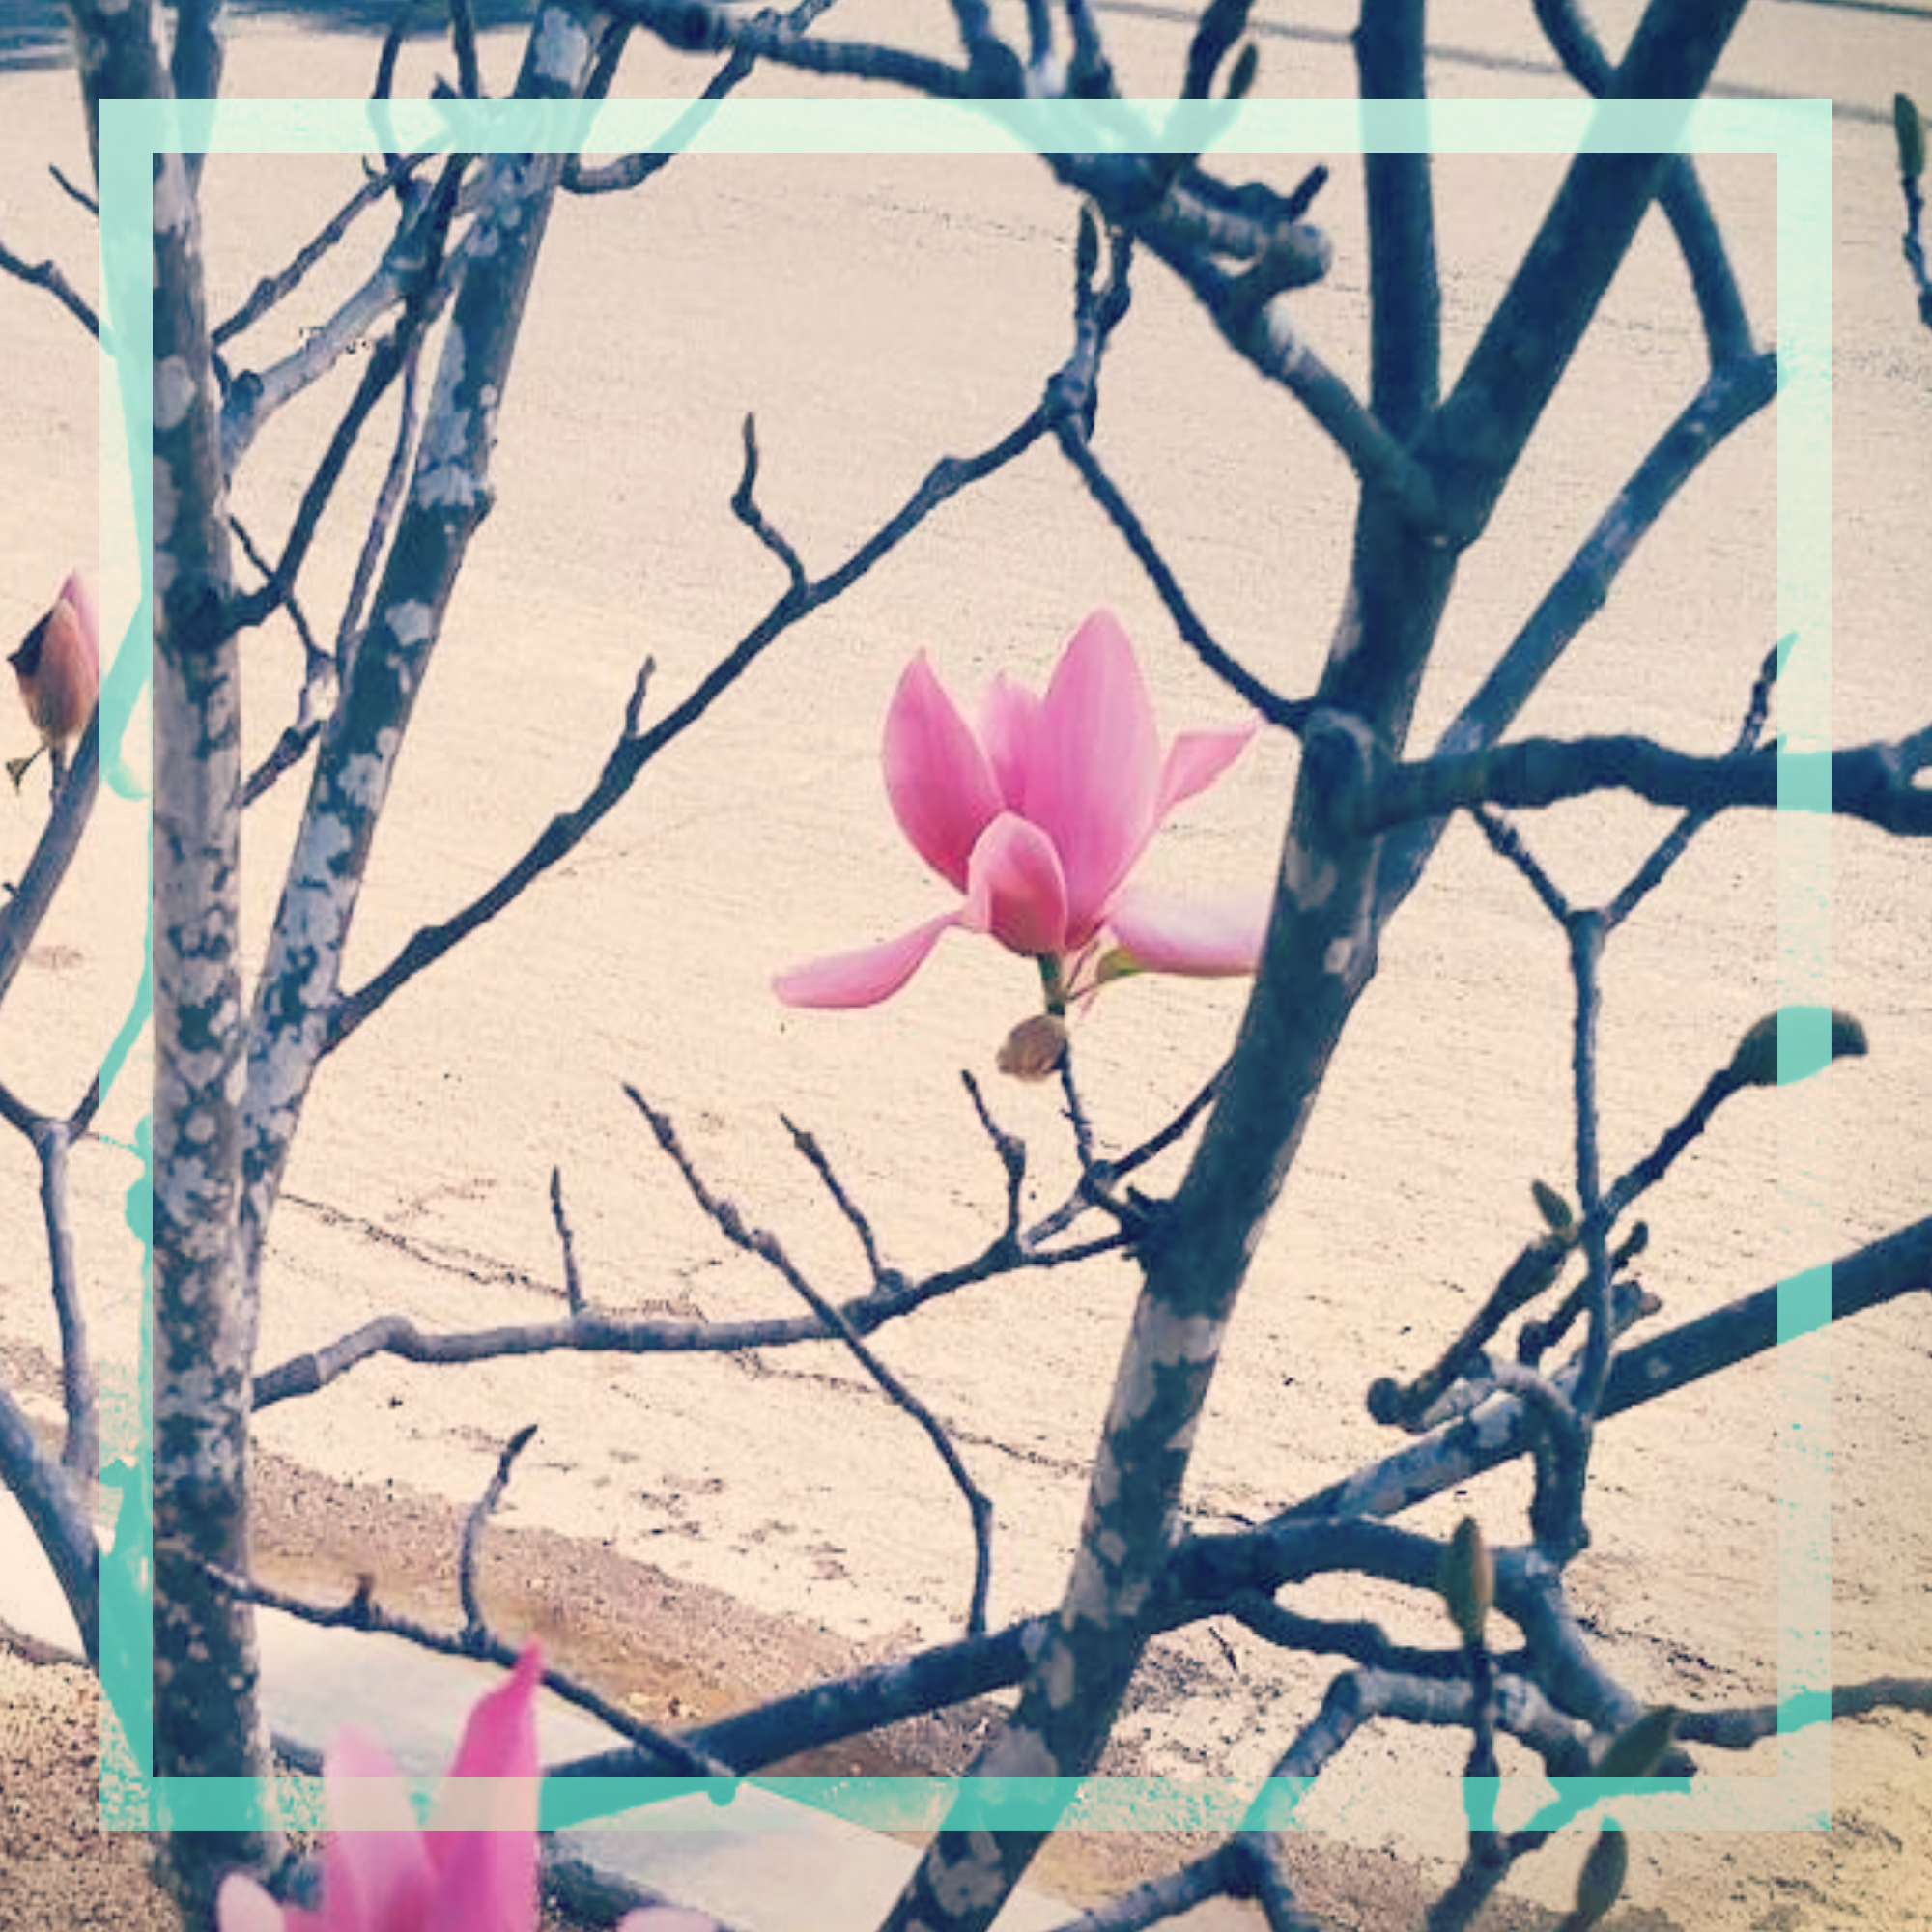 a square image of a leafless magnolia tree with two bright pink blossoms and a cream or sand colored background with a light teal square framing the image